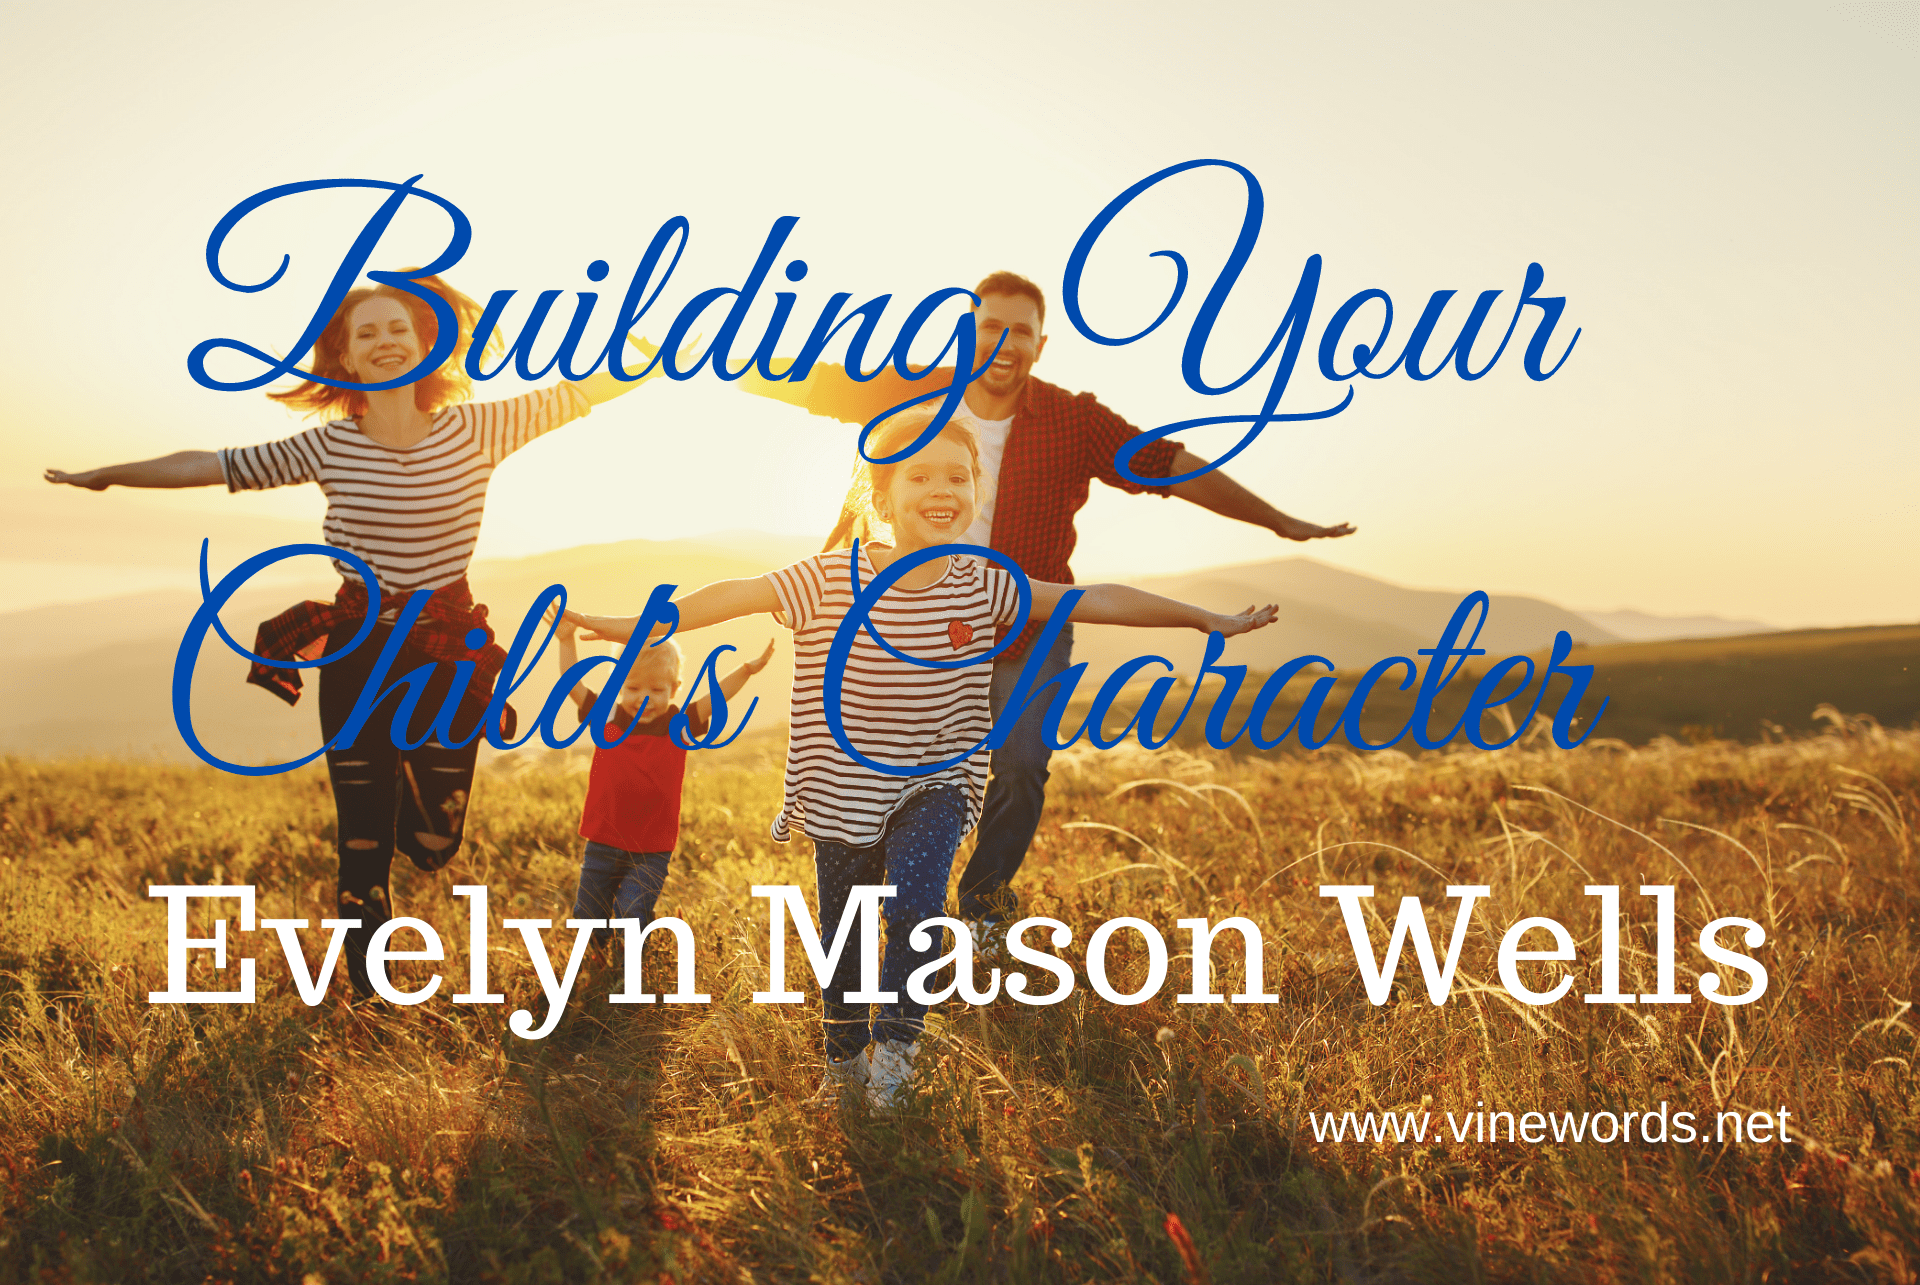 Evelyn Mason Wells: Building Your Child's Character